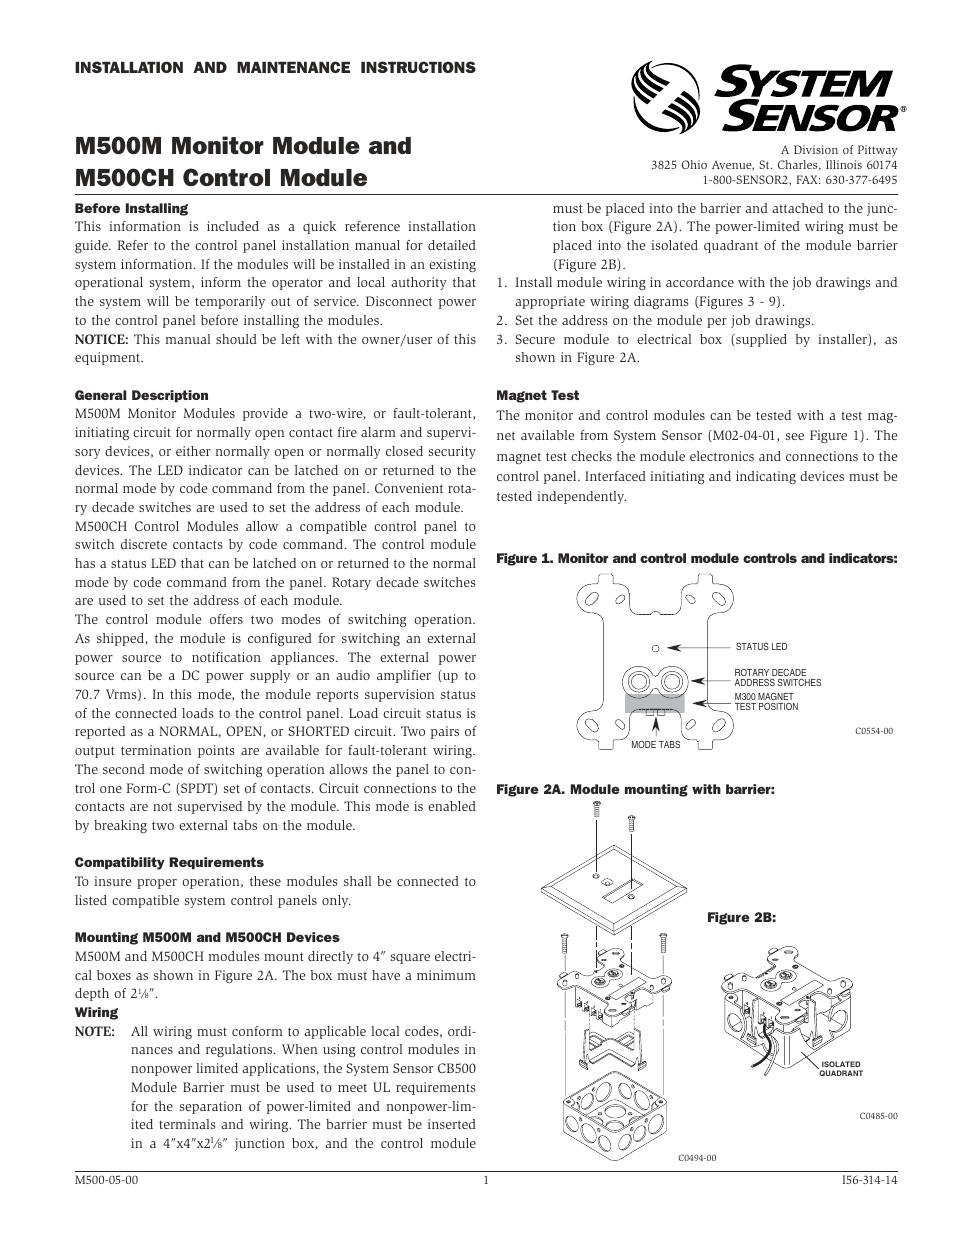 system sensor m500ch page1 system sensor m500ch user manual 4 pages 5R55E Transmission Wiring Diagram at panicattacktreatment.co